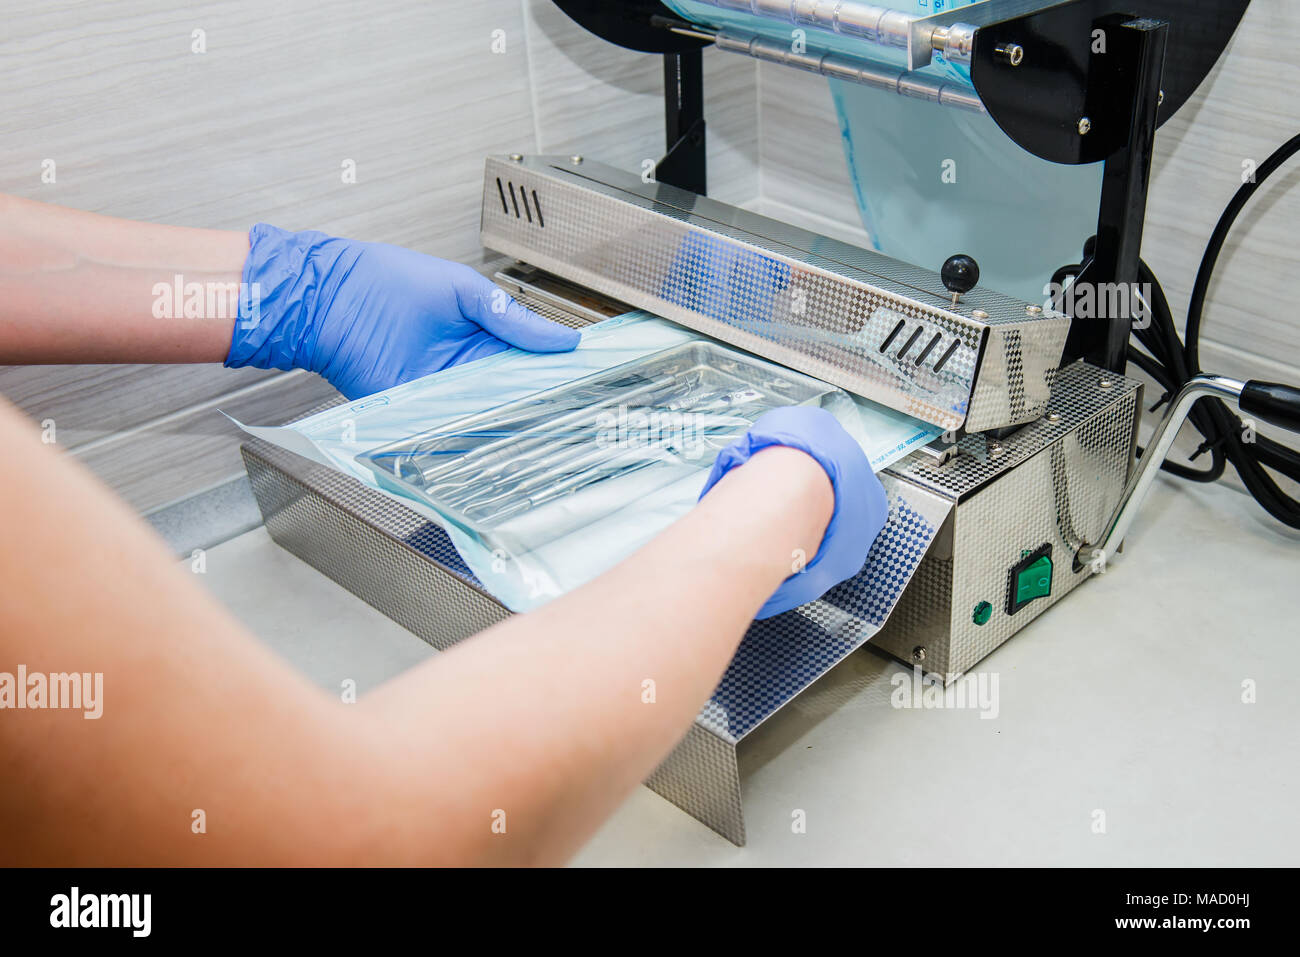 Close up dentist's assistant hands in gloves packing dental instrument set for autoclaving in a plastic bag using vacuum packing machine. Sterility and safety care concept. Selective focus. - Stock Image